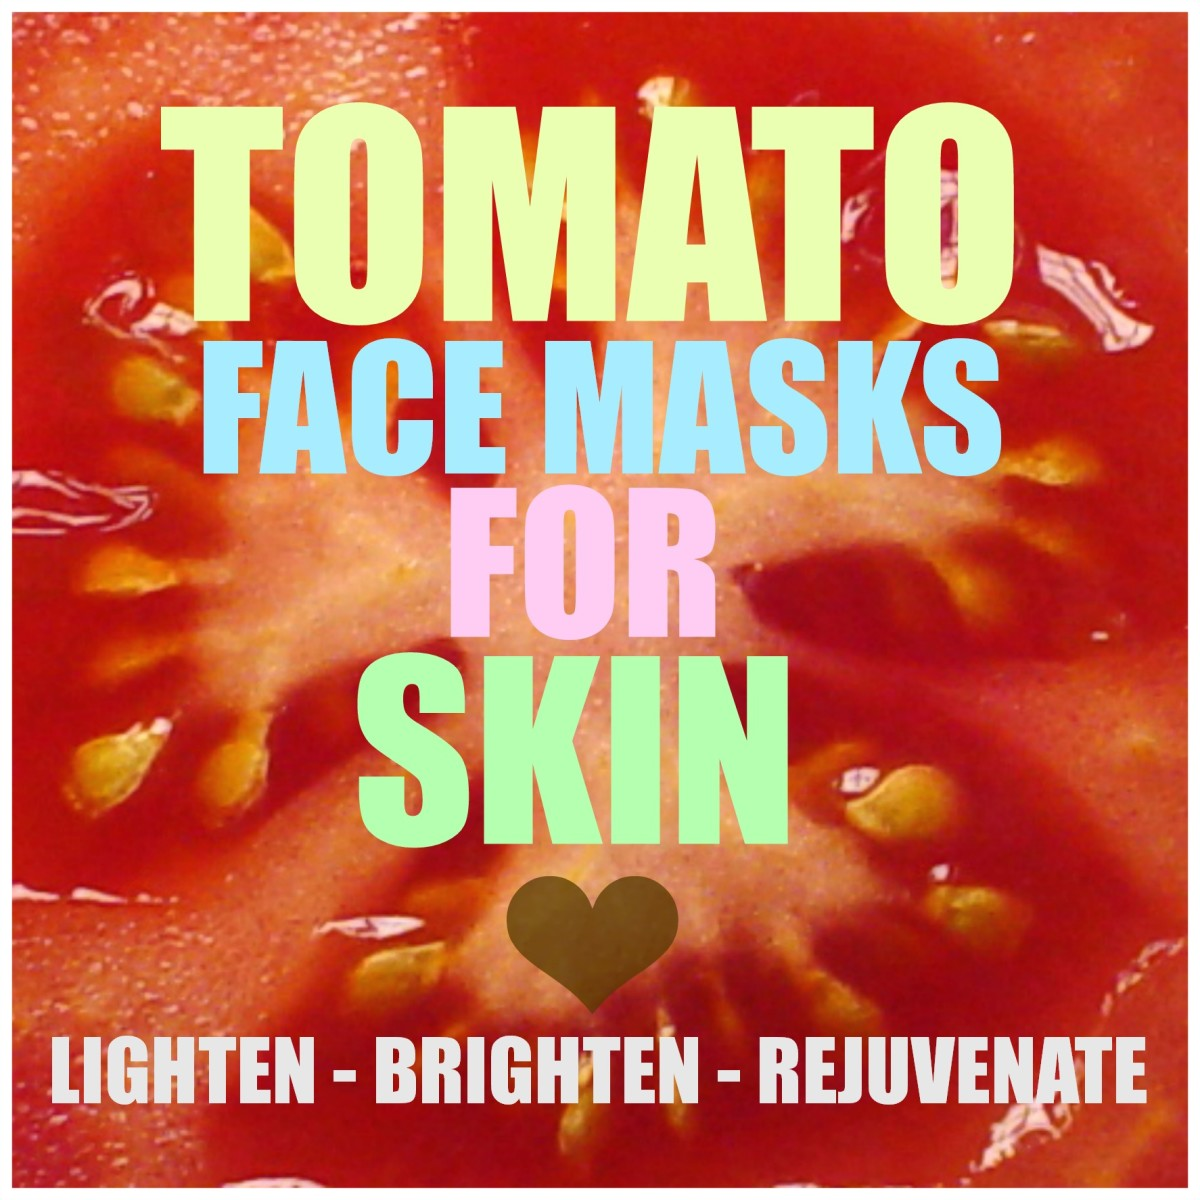 Top 3 Homemade Tomato Face Mask Recipes for Rosy & Radiant Skin